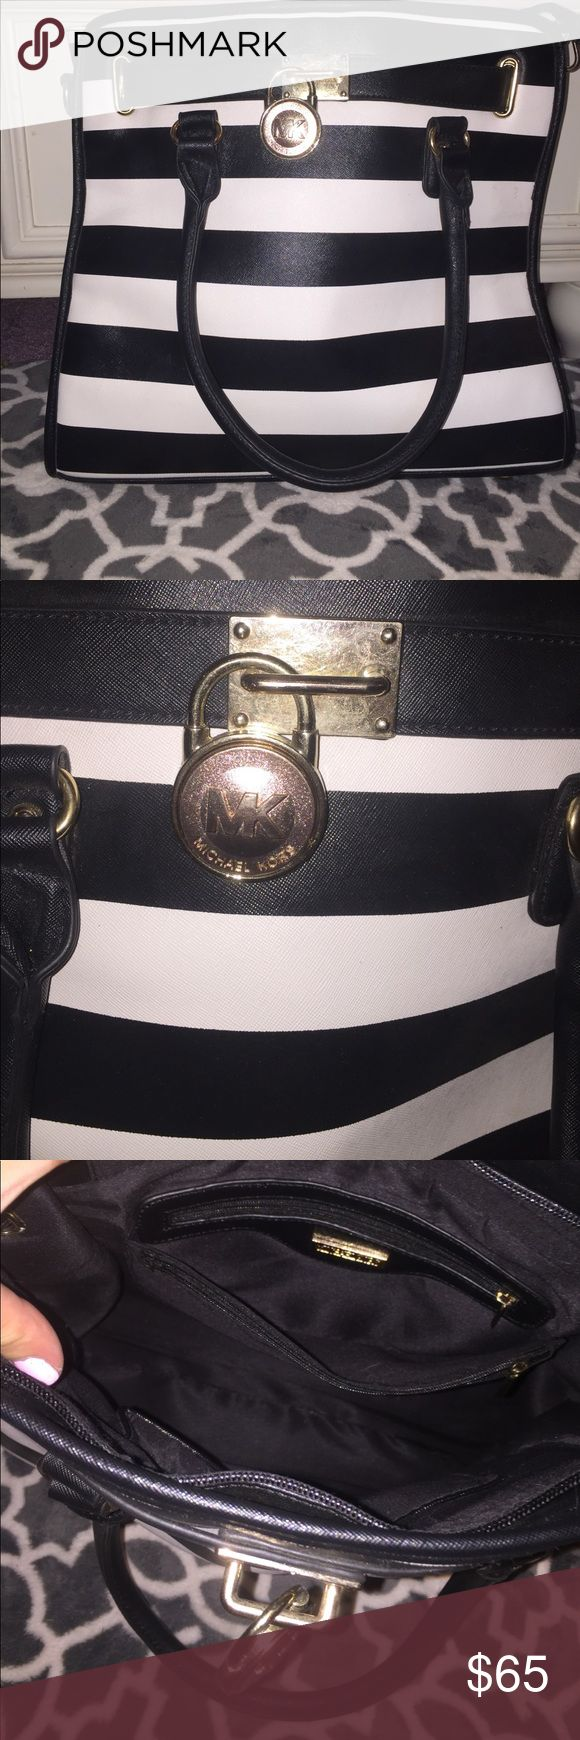 Quality imitation Michael Kors striped tote Brand new imitation Michael Kors tote bag, black and white stripes never used. Large gold lock on front, multiple pockets. Make me an offer😋 Michael Kors Bags Totes